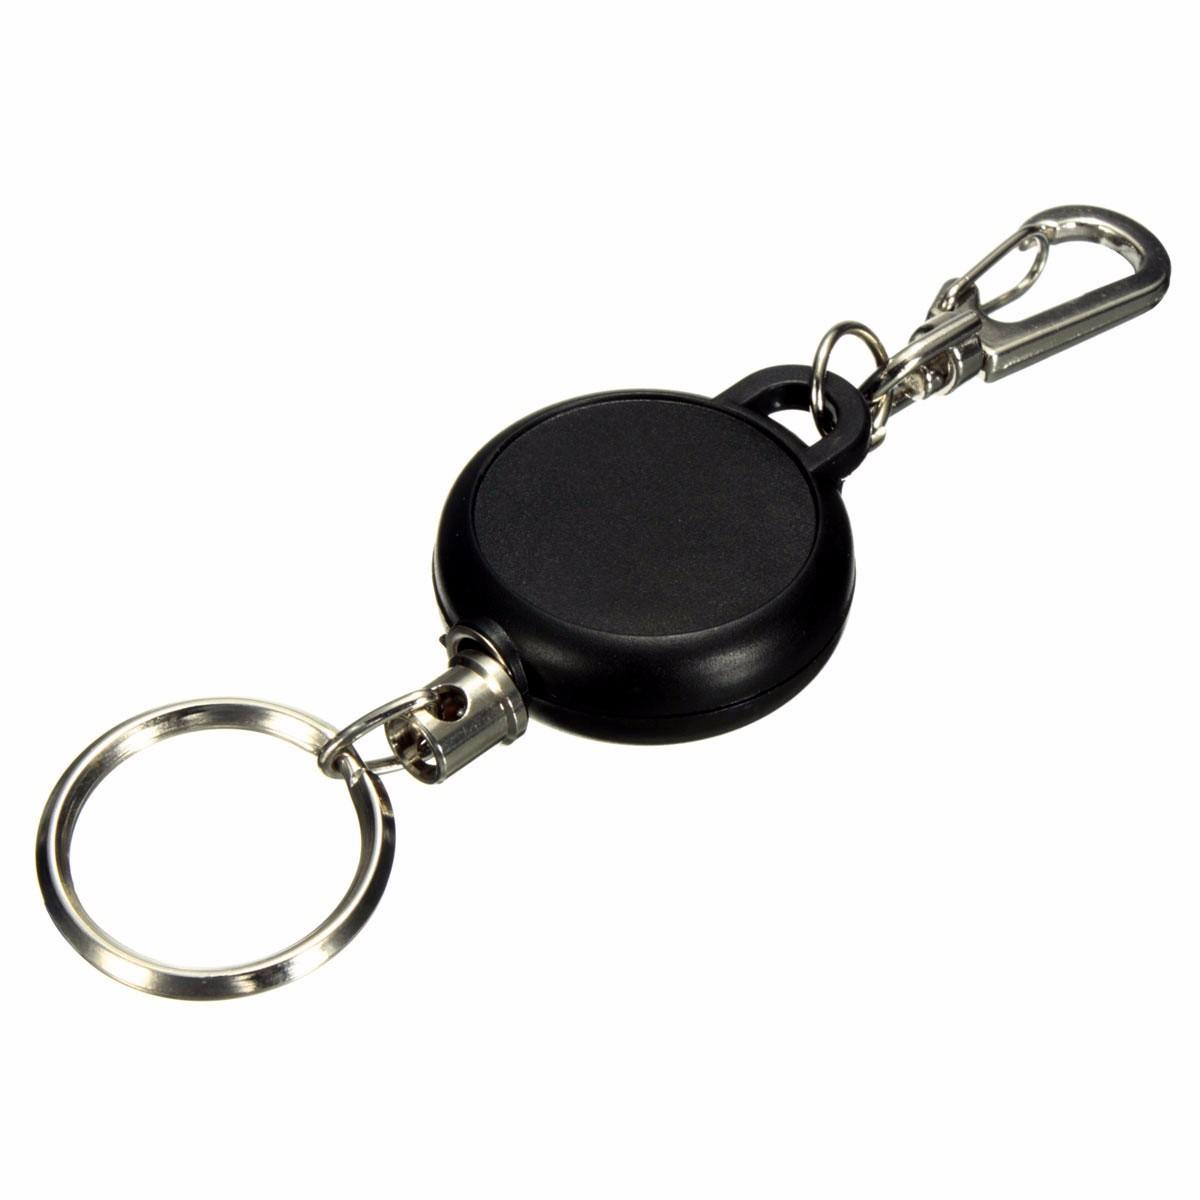 Key Chain Stainless Steel Cord Holder Keyring Reel Retractable Recoil Belt  Clip Key Clip COD 55d966f2e